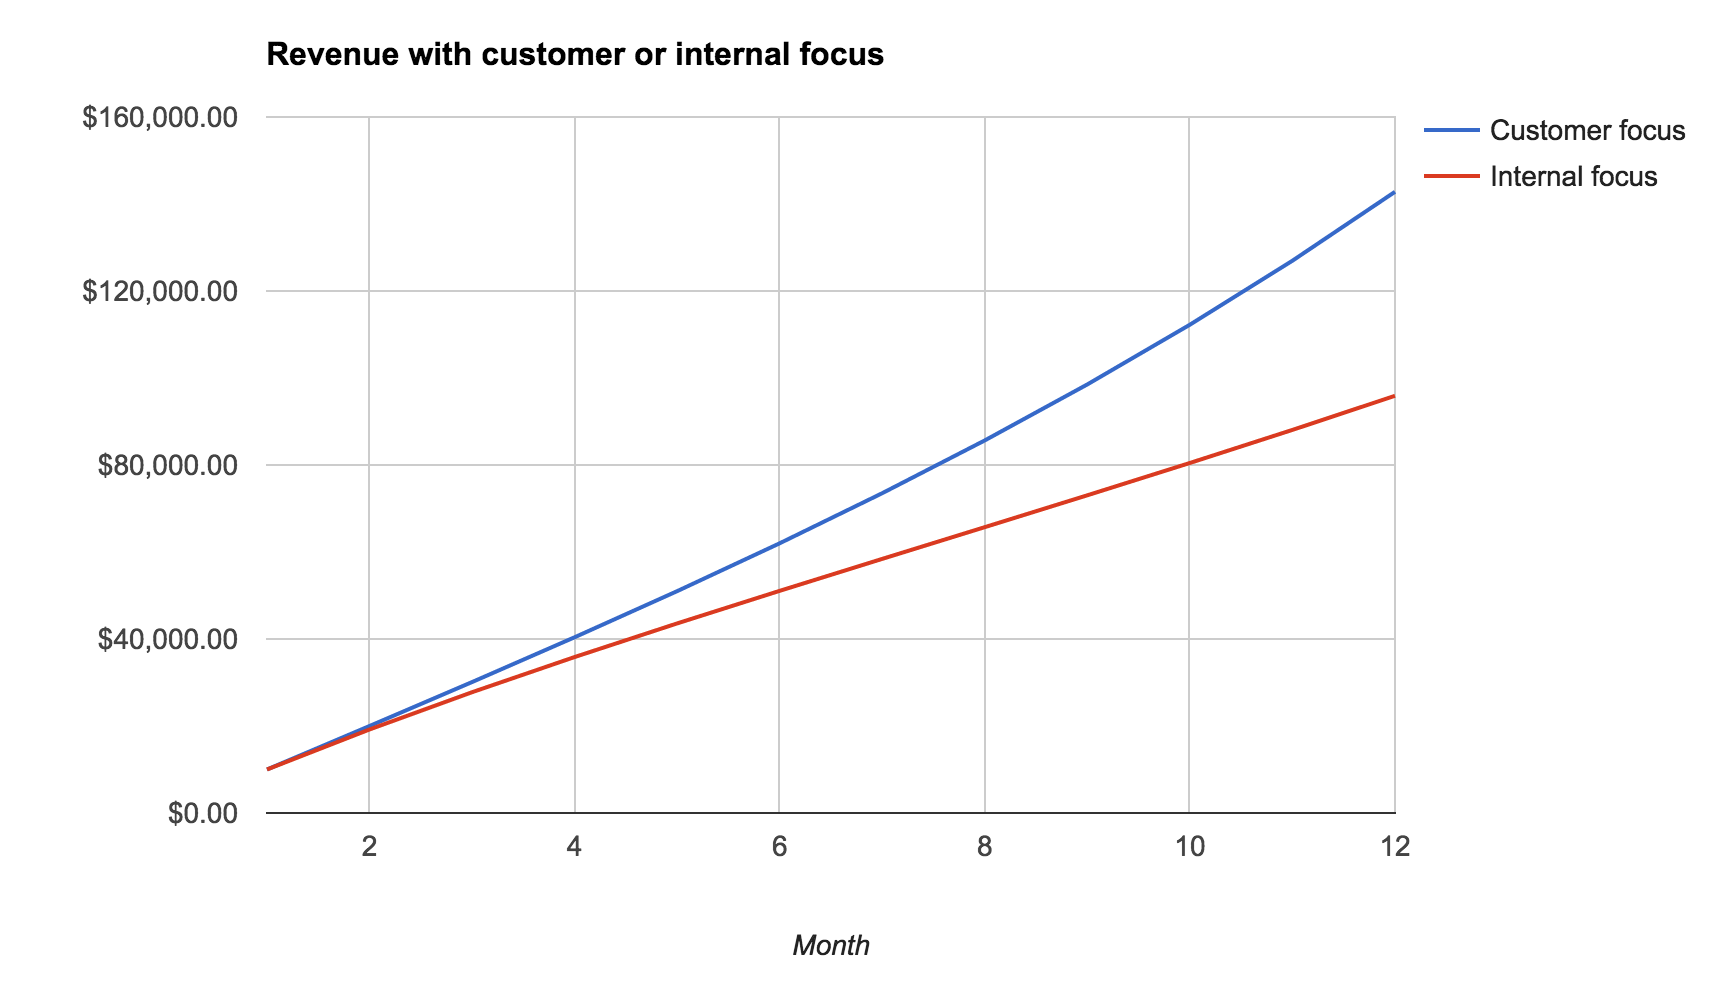 Revenue graph for customer focused vs internal focused companies